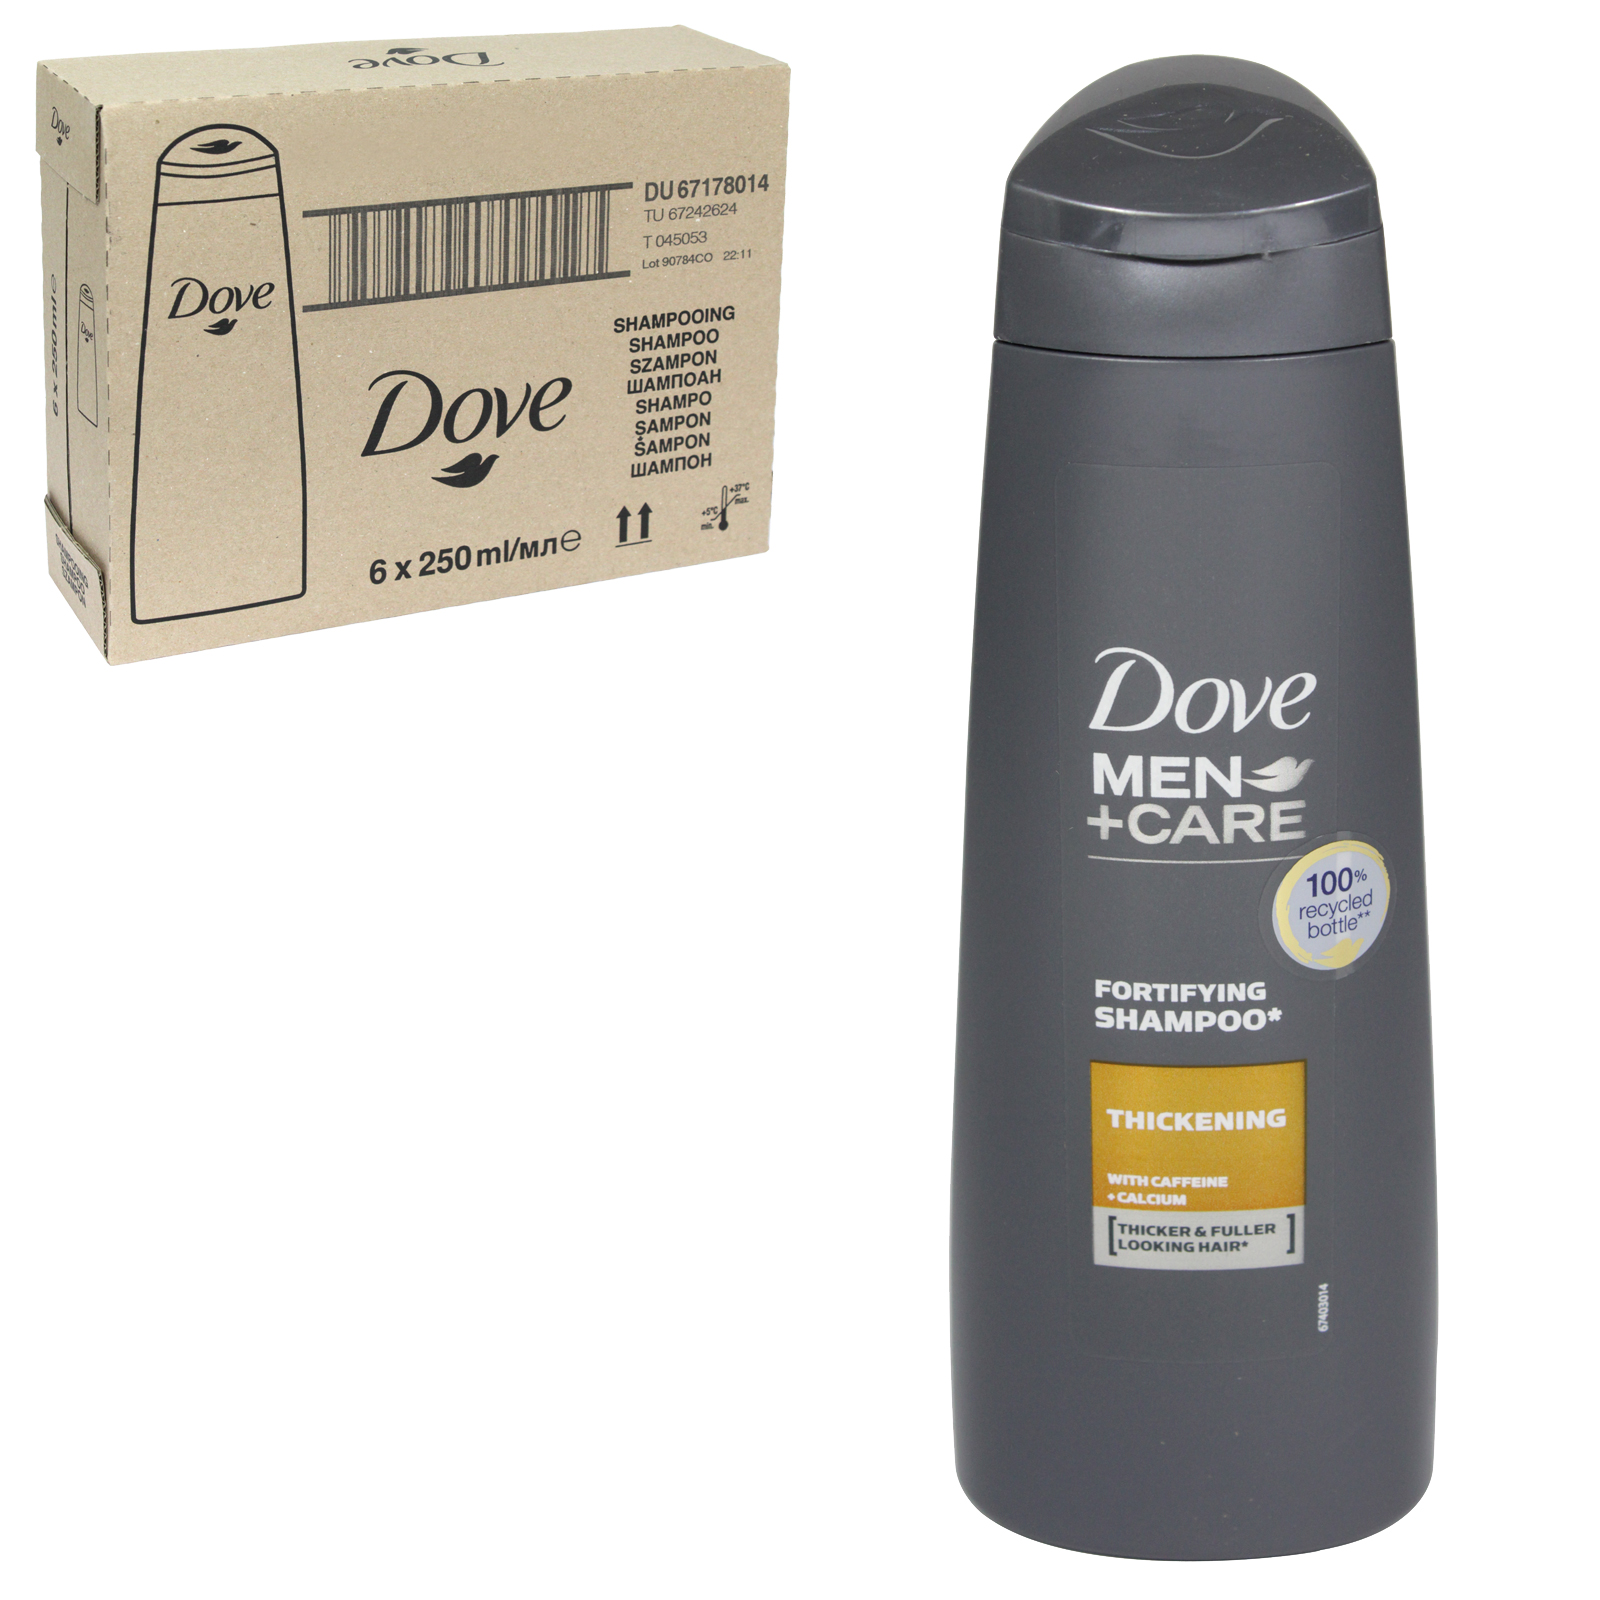 DOVE MEN+CARE SHAMPOO 250ML THICKENING FOR MEN X6